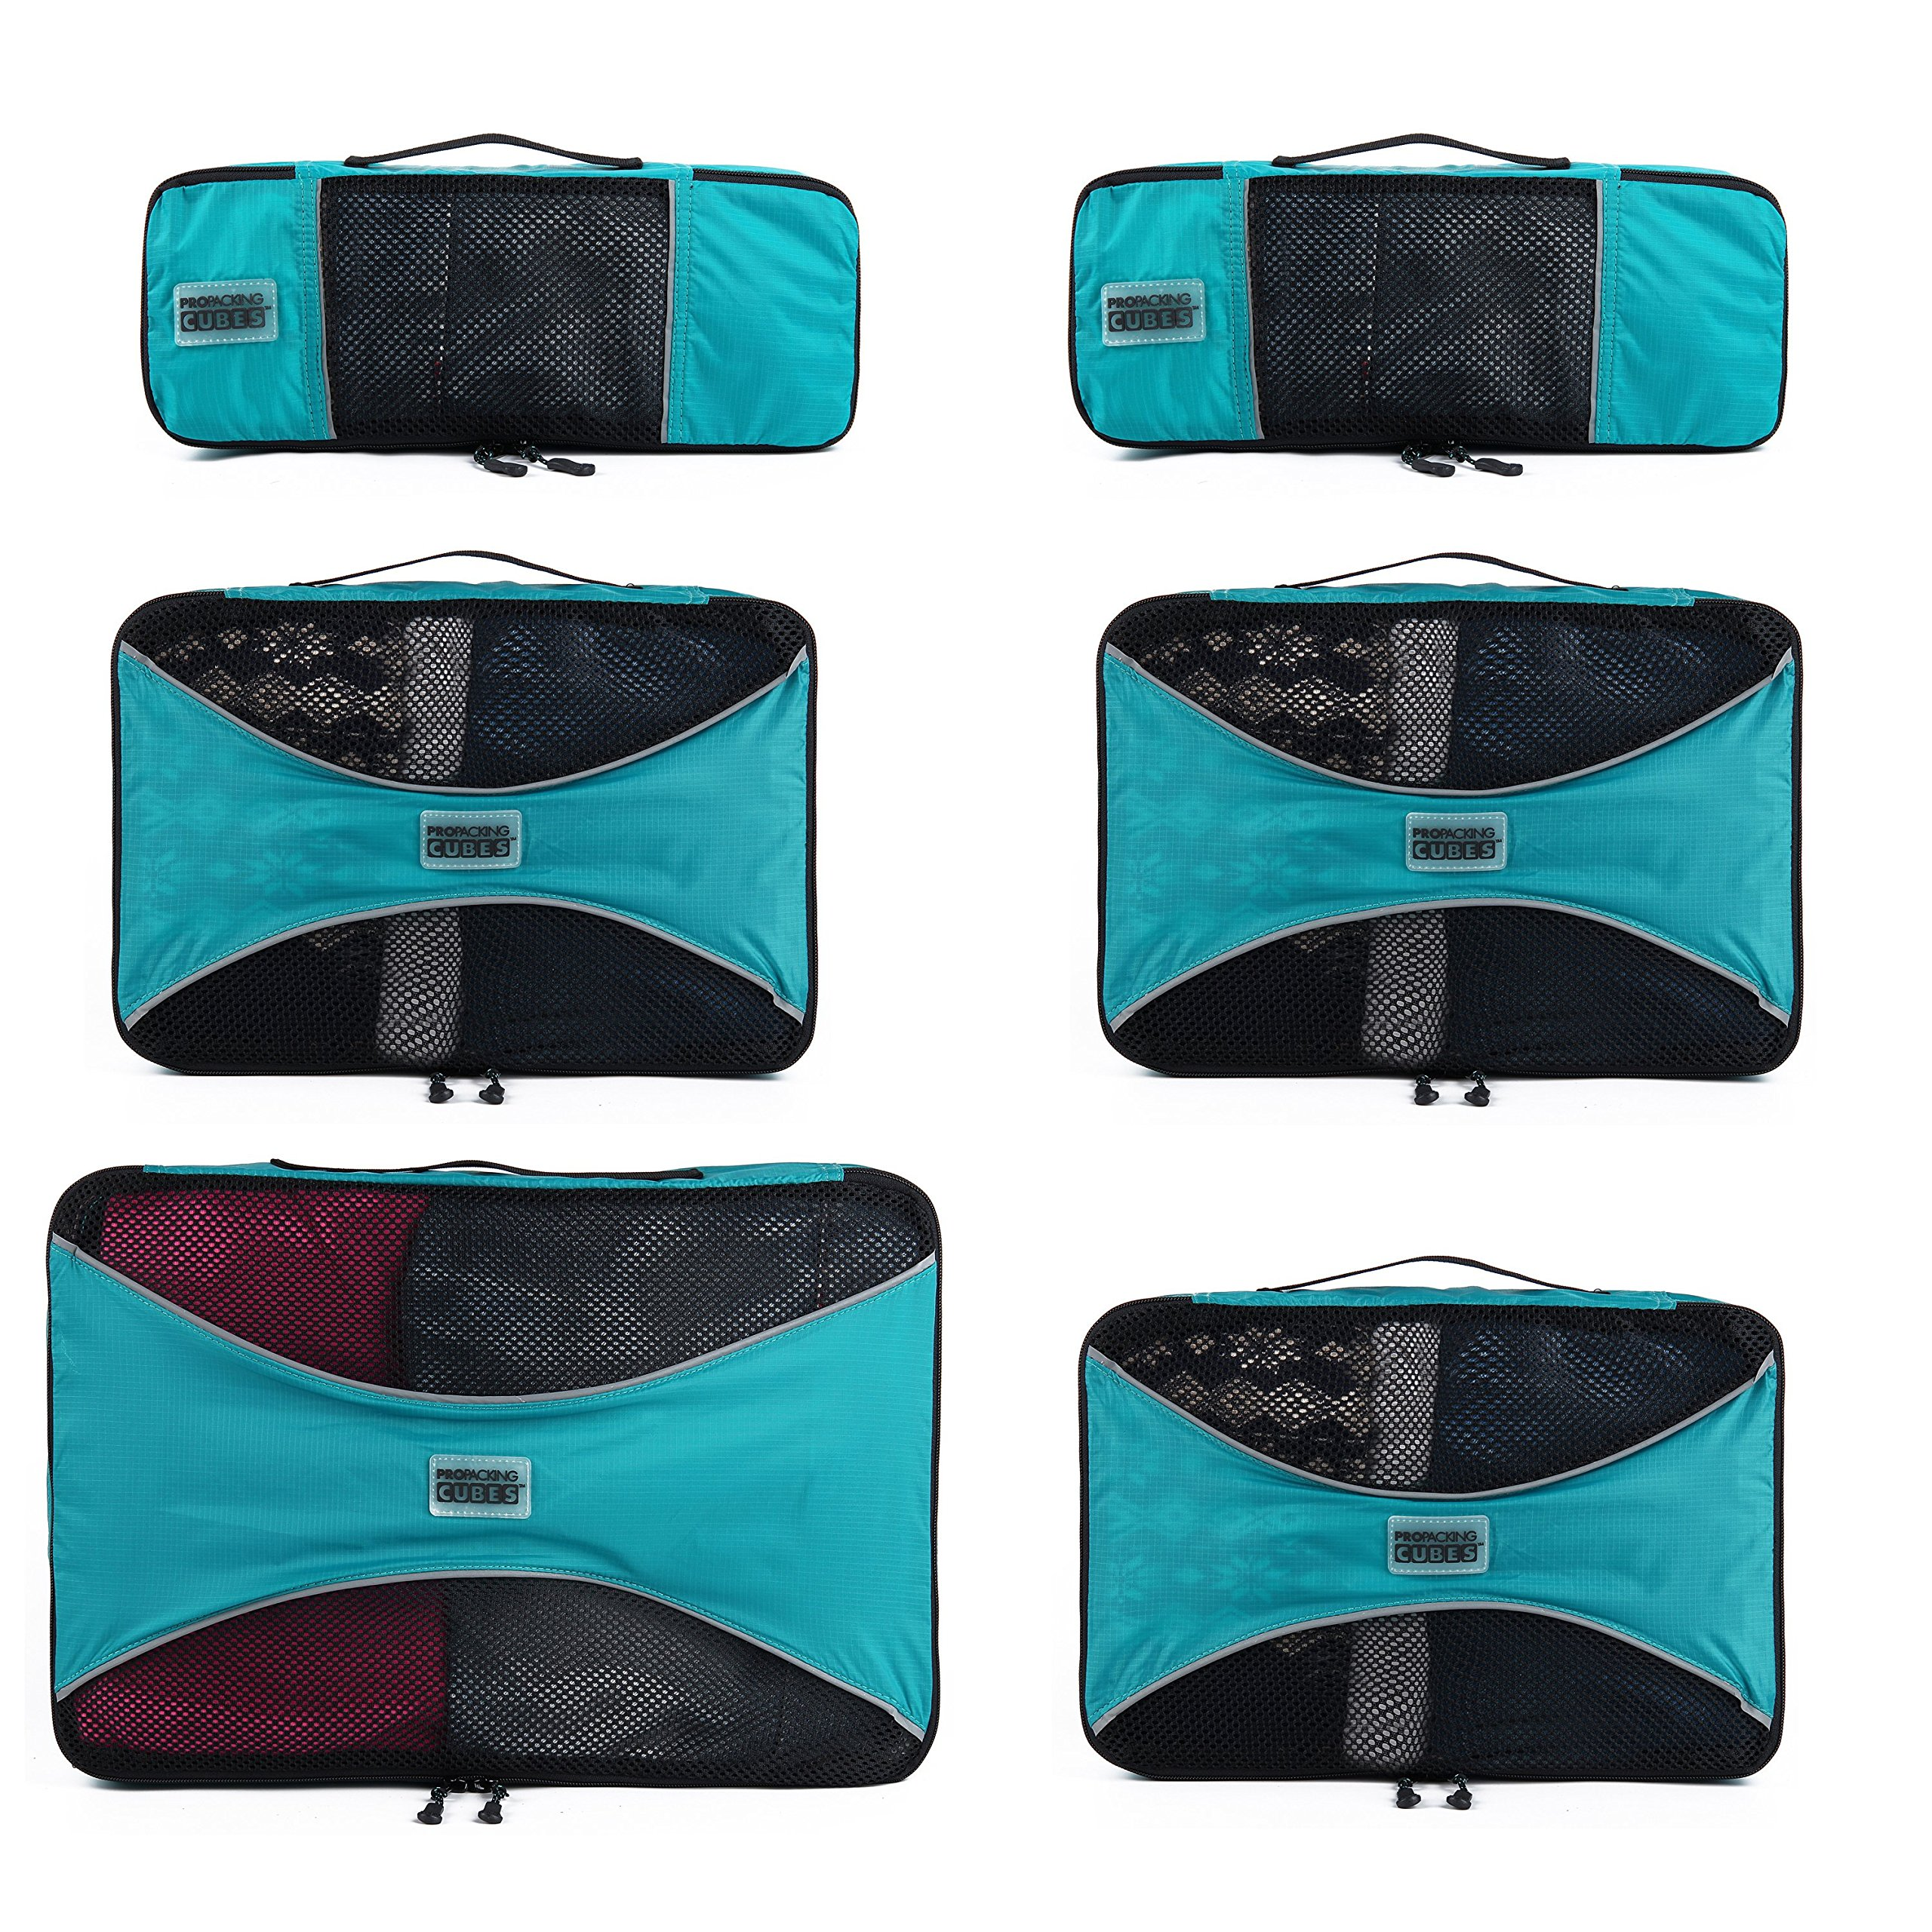 e75c334b6157 PRO Packing Cubes for Travel - Luggage Organizer Bags, Accessories -  Ultralight - My Travel Luggage